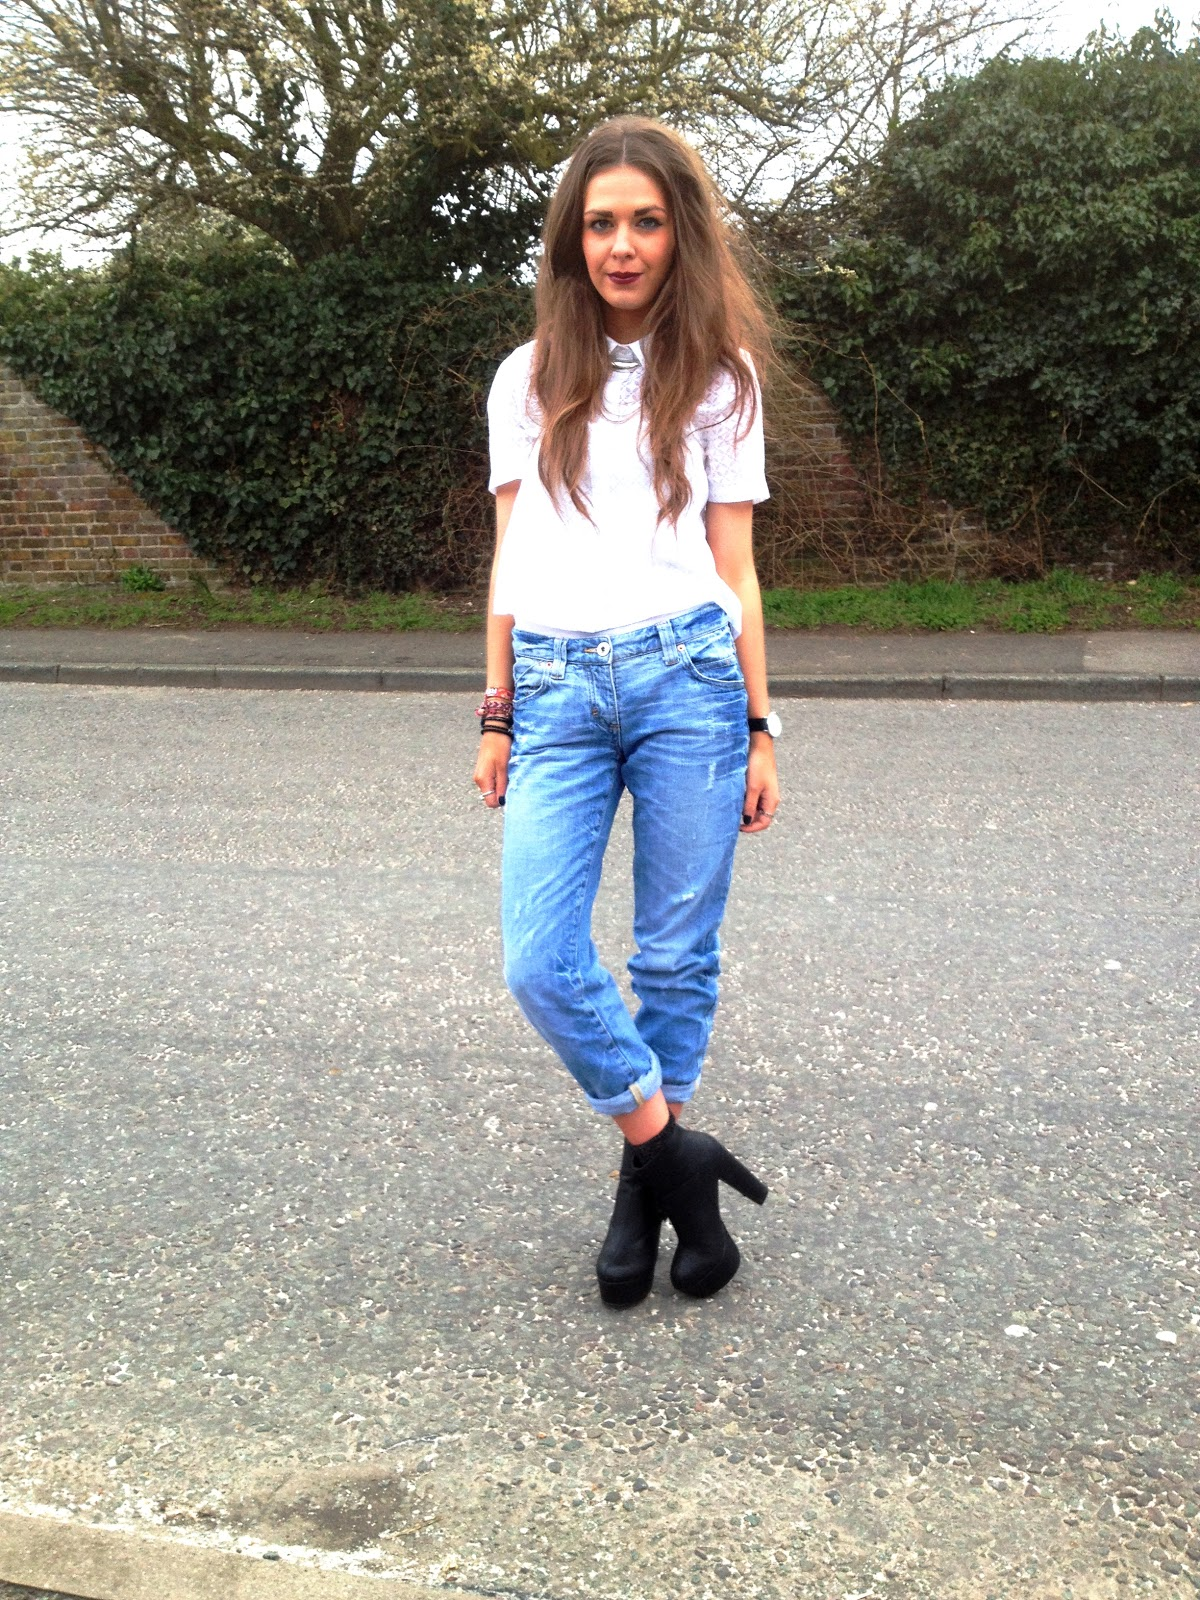 White shirt with jeans and heels